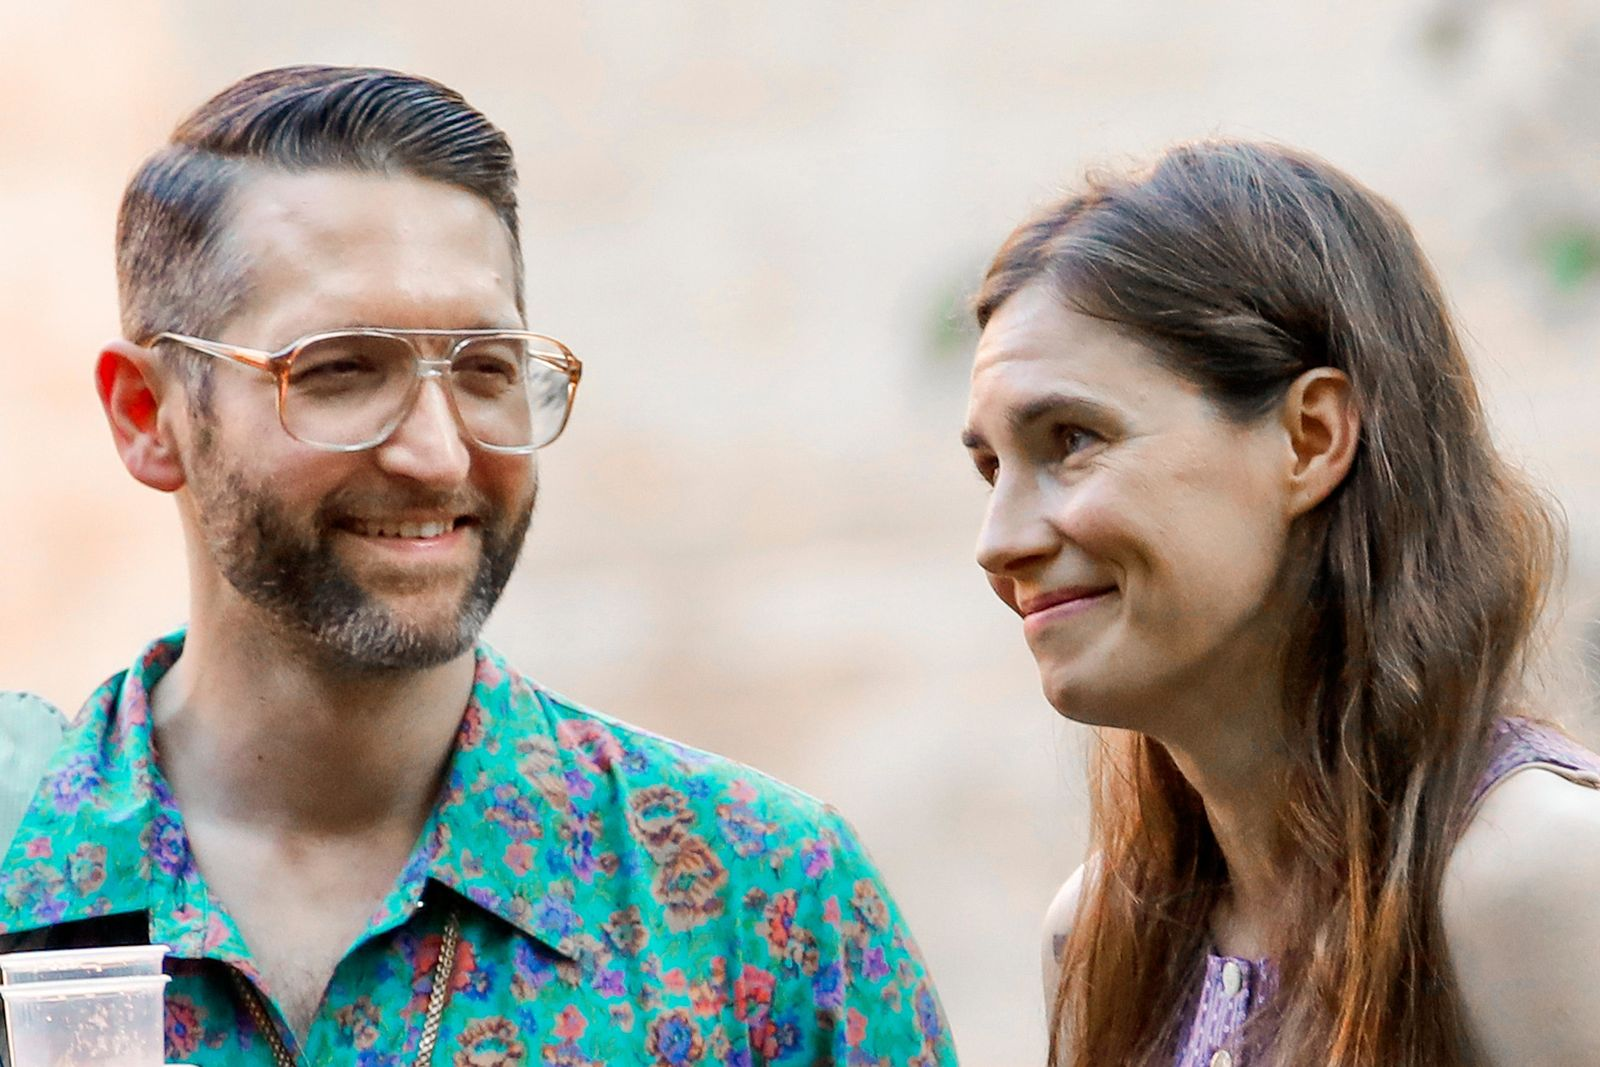 Amanda Knox, right, and her boyfriend Christopher Robinson attend a cocktail for the opening of the Innocence Project conference, in Modena, Italy, Thursday, June 13, 2019. (AP Photo/Antonio Calanni)(AP Photo/Antonio Calanni)